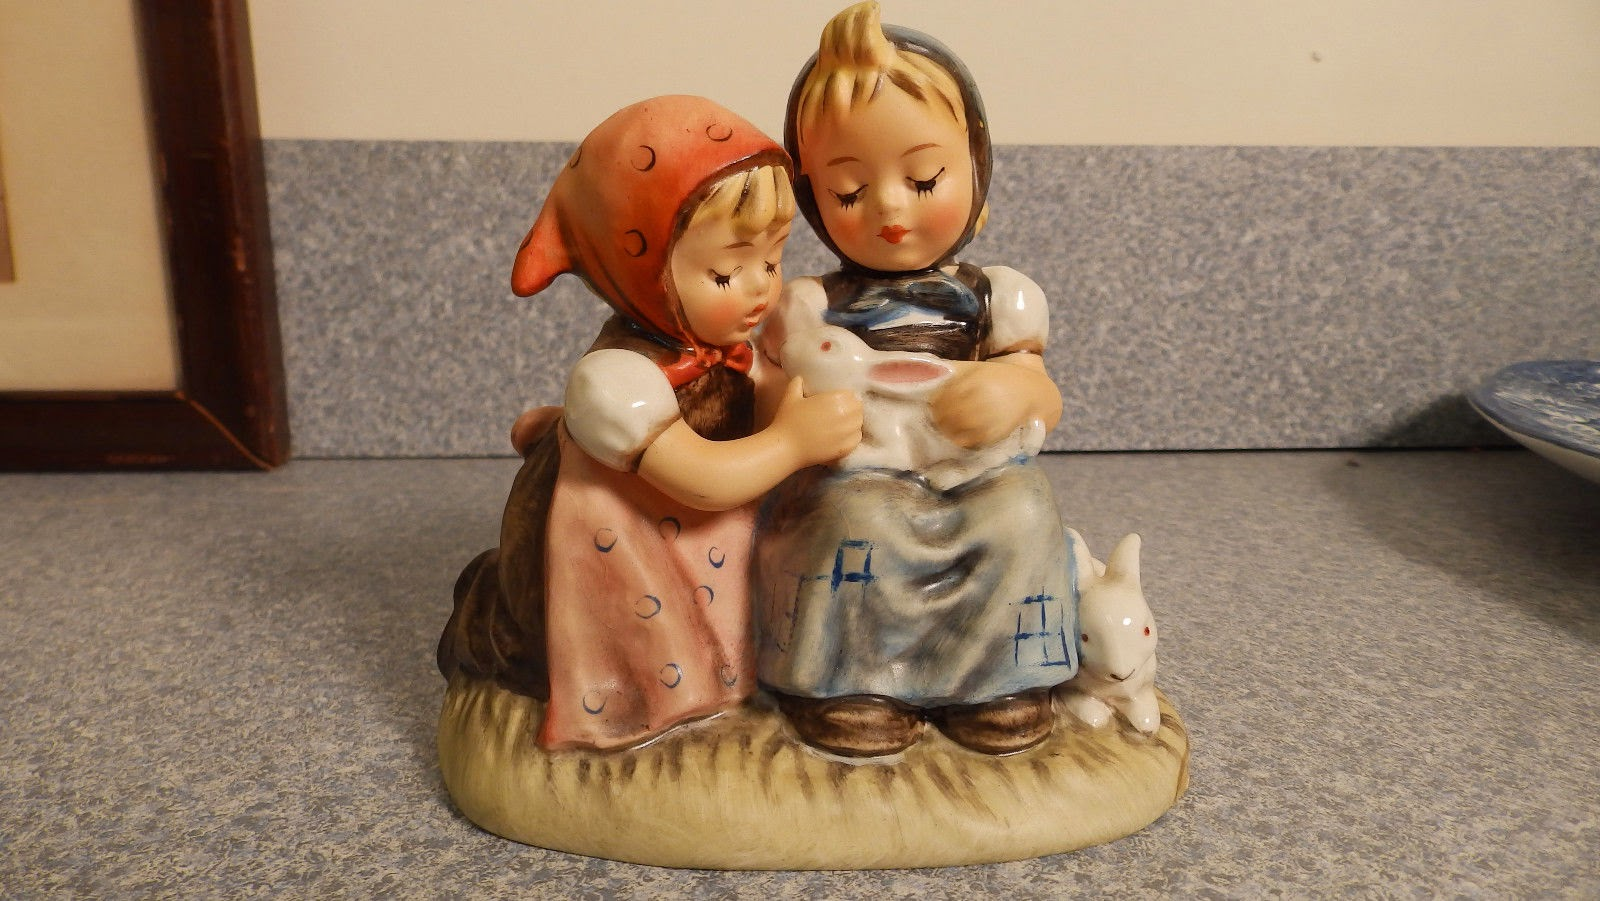 http://www.ebay.com/itm/Goebel-Easter-Time-Hummel-figurine-Girls-bunnies-rabbits-384-TMK-5-/321690545267?pt=LH_DefaultDomain_0&hash=item4ae6402c73